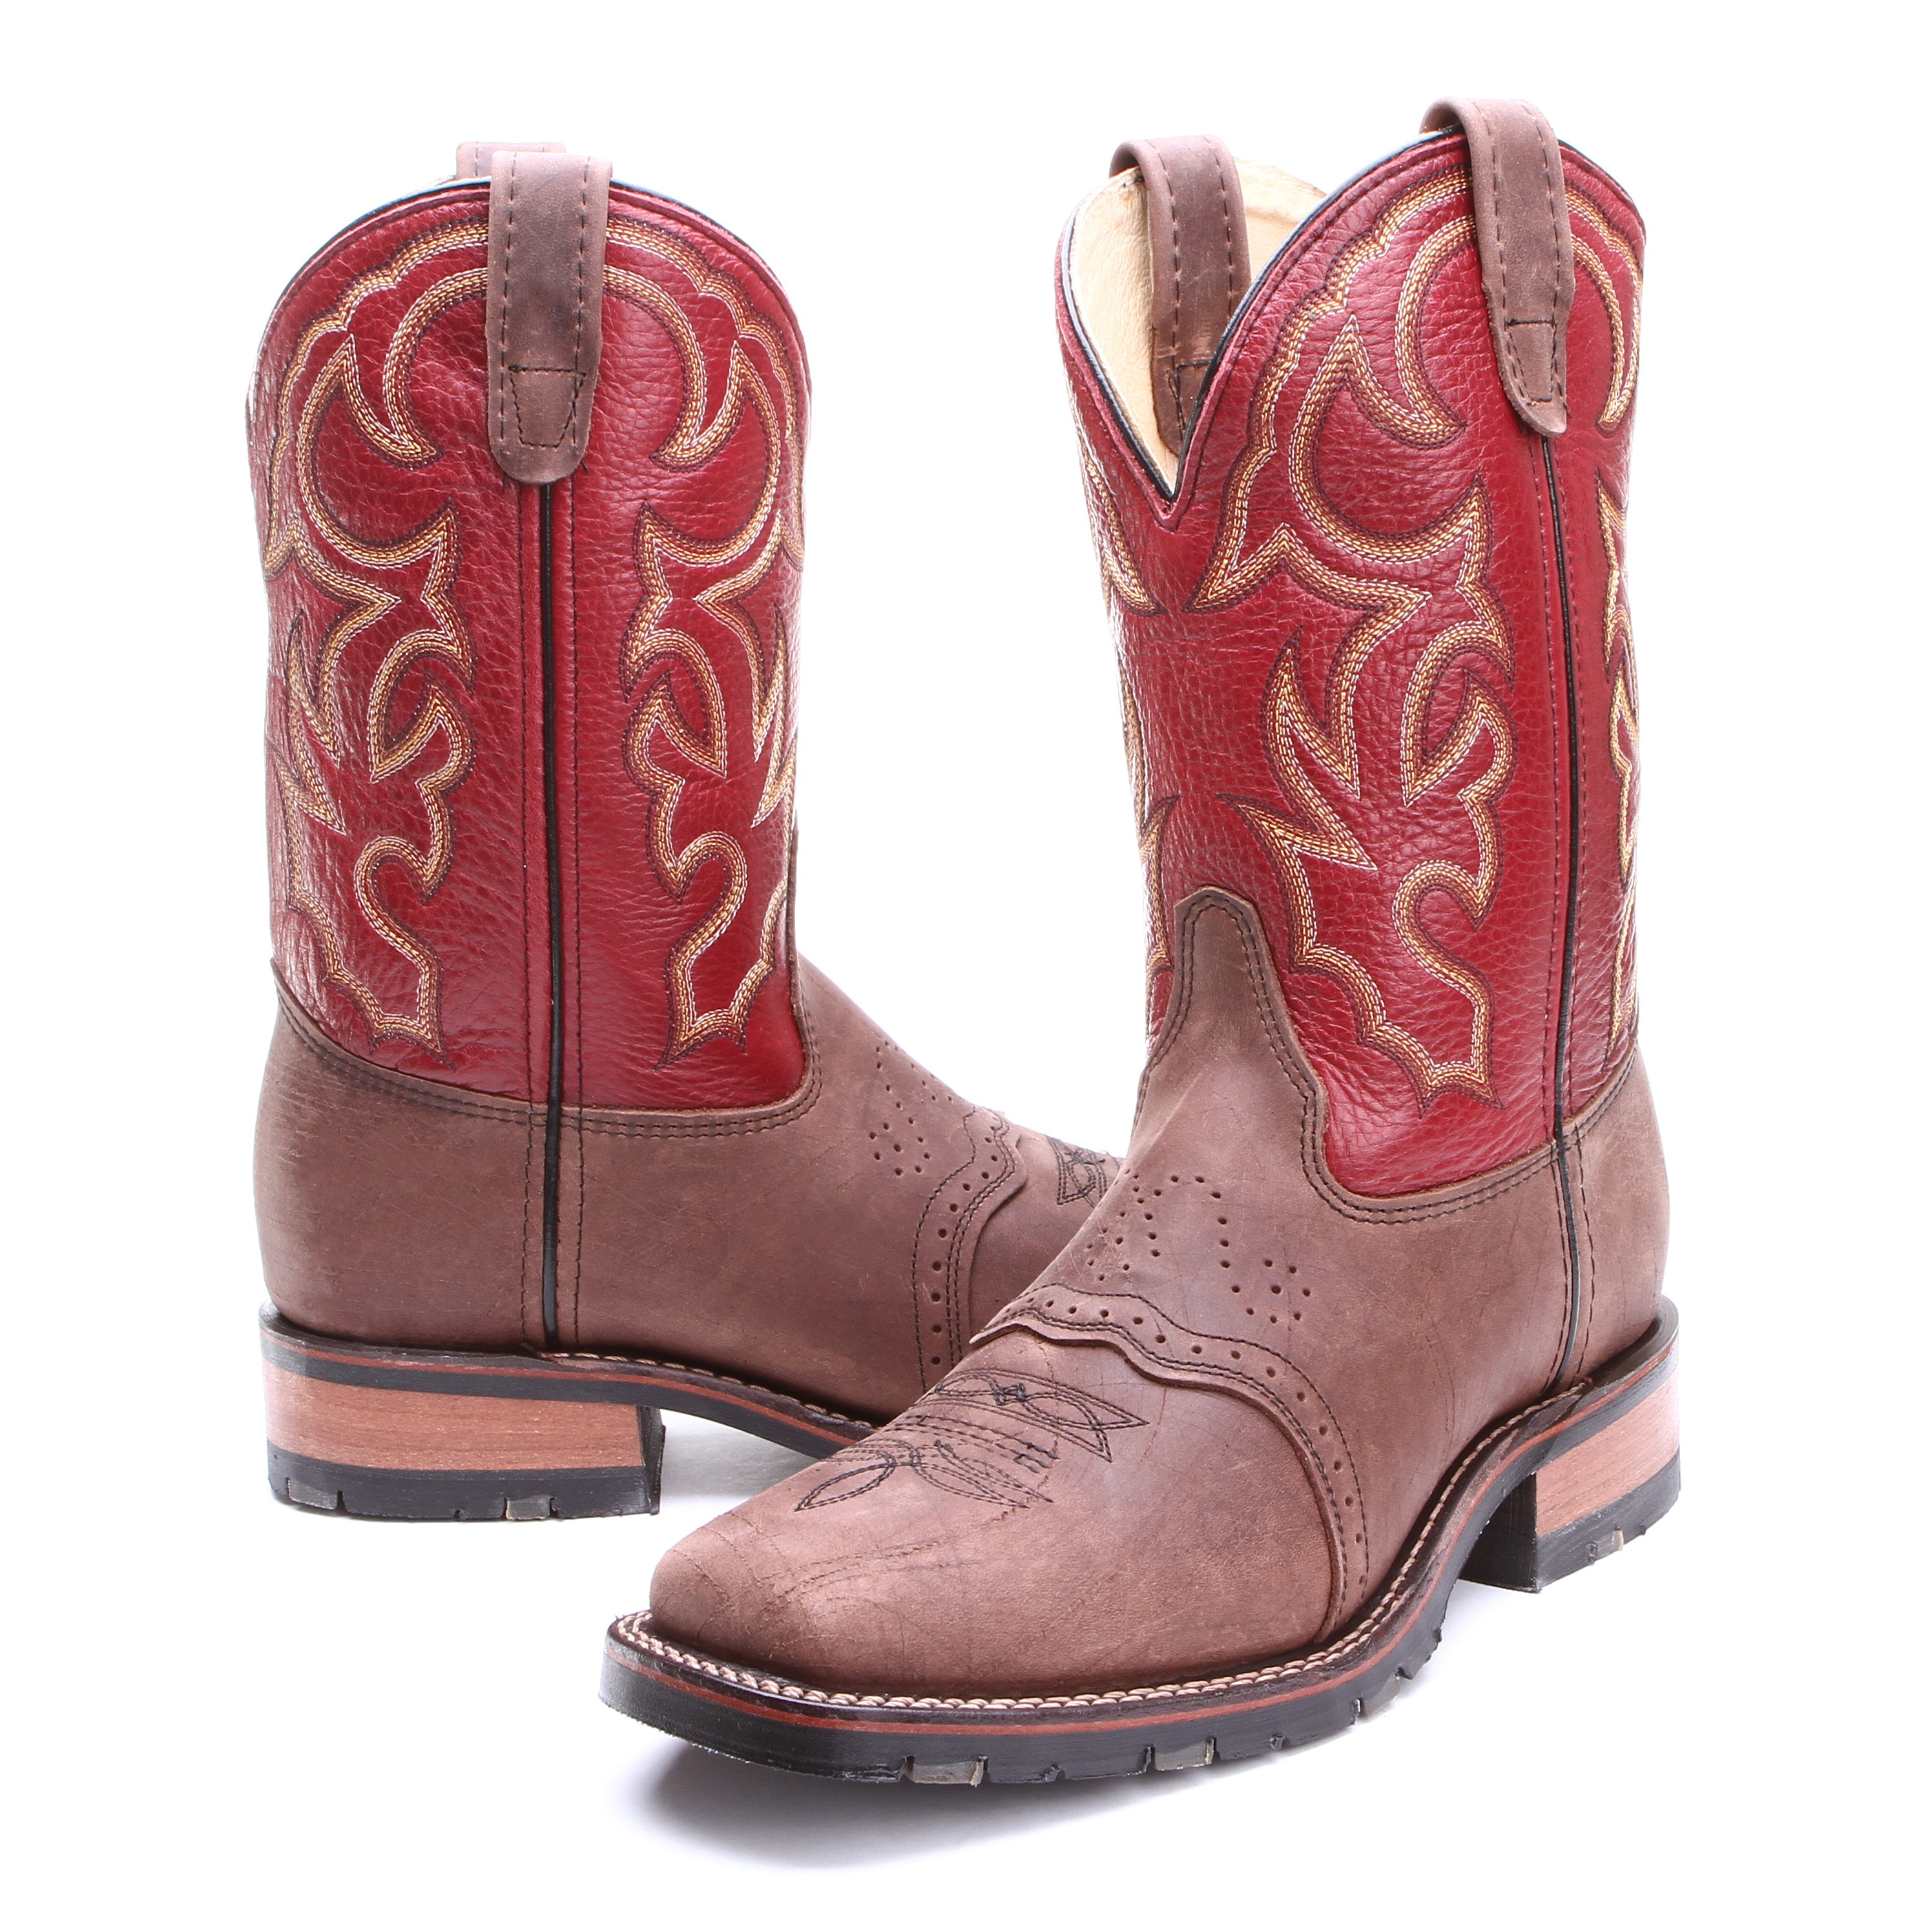 Red square toe cowgirl bootsRed square toe cowgirl boots